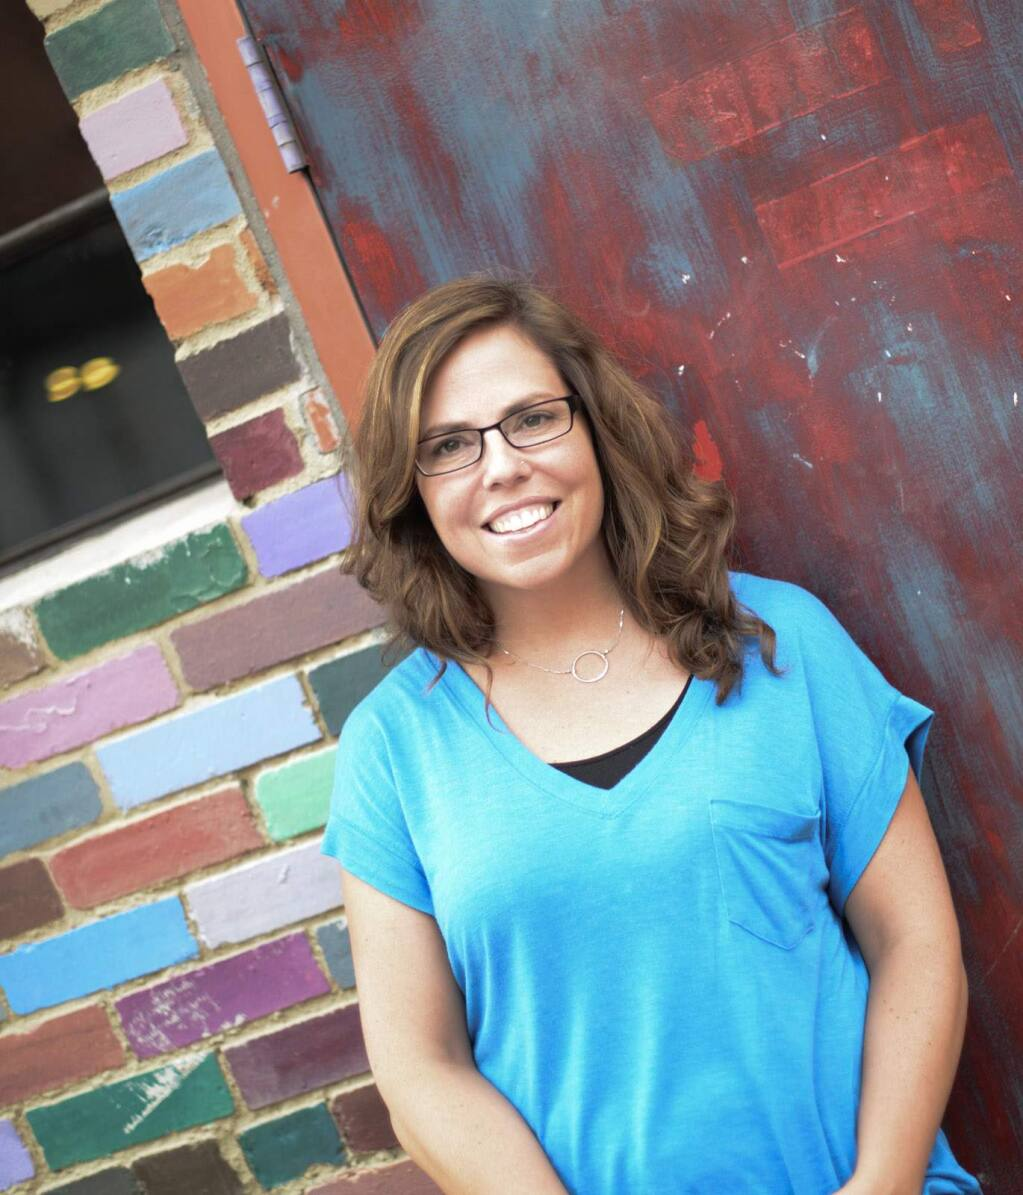 Carlotta Mast is the senior vice president for content and insights at New Hope Natural Media. (PROVIDED PHOTO)